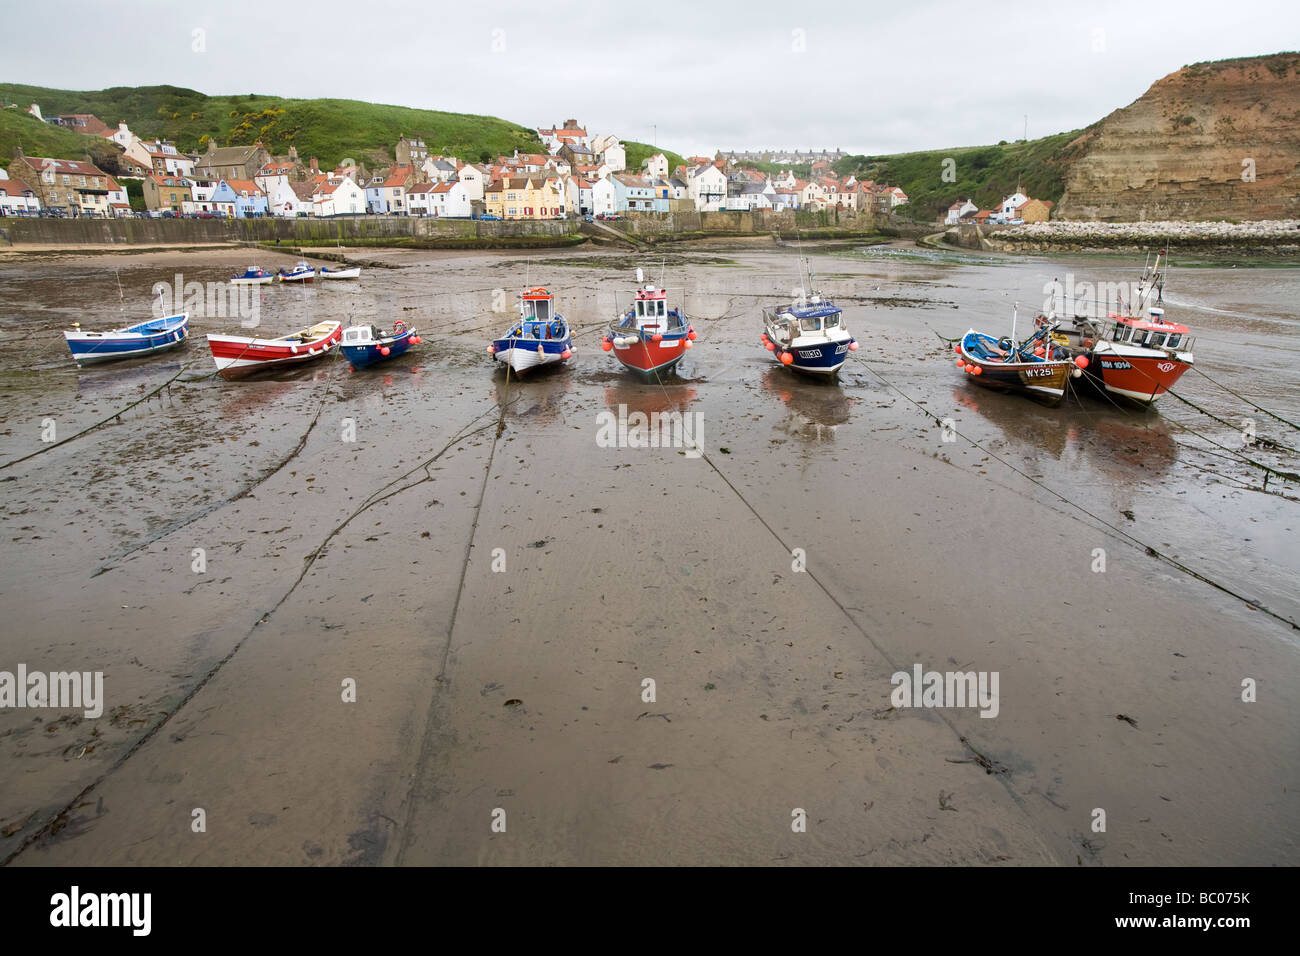 Small tied-up boats in a row left dry at low tide standing on sand with reflections Staithes North Yorkshire England - Stock Image